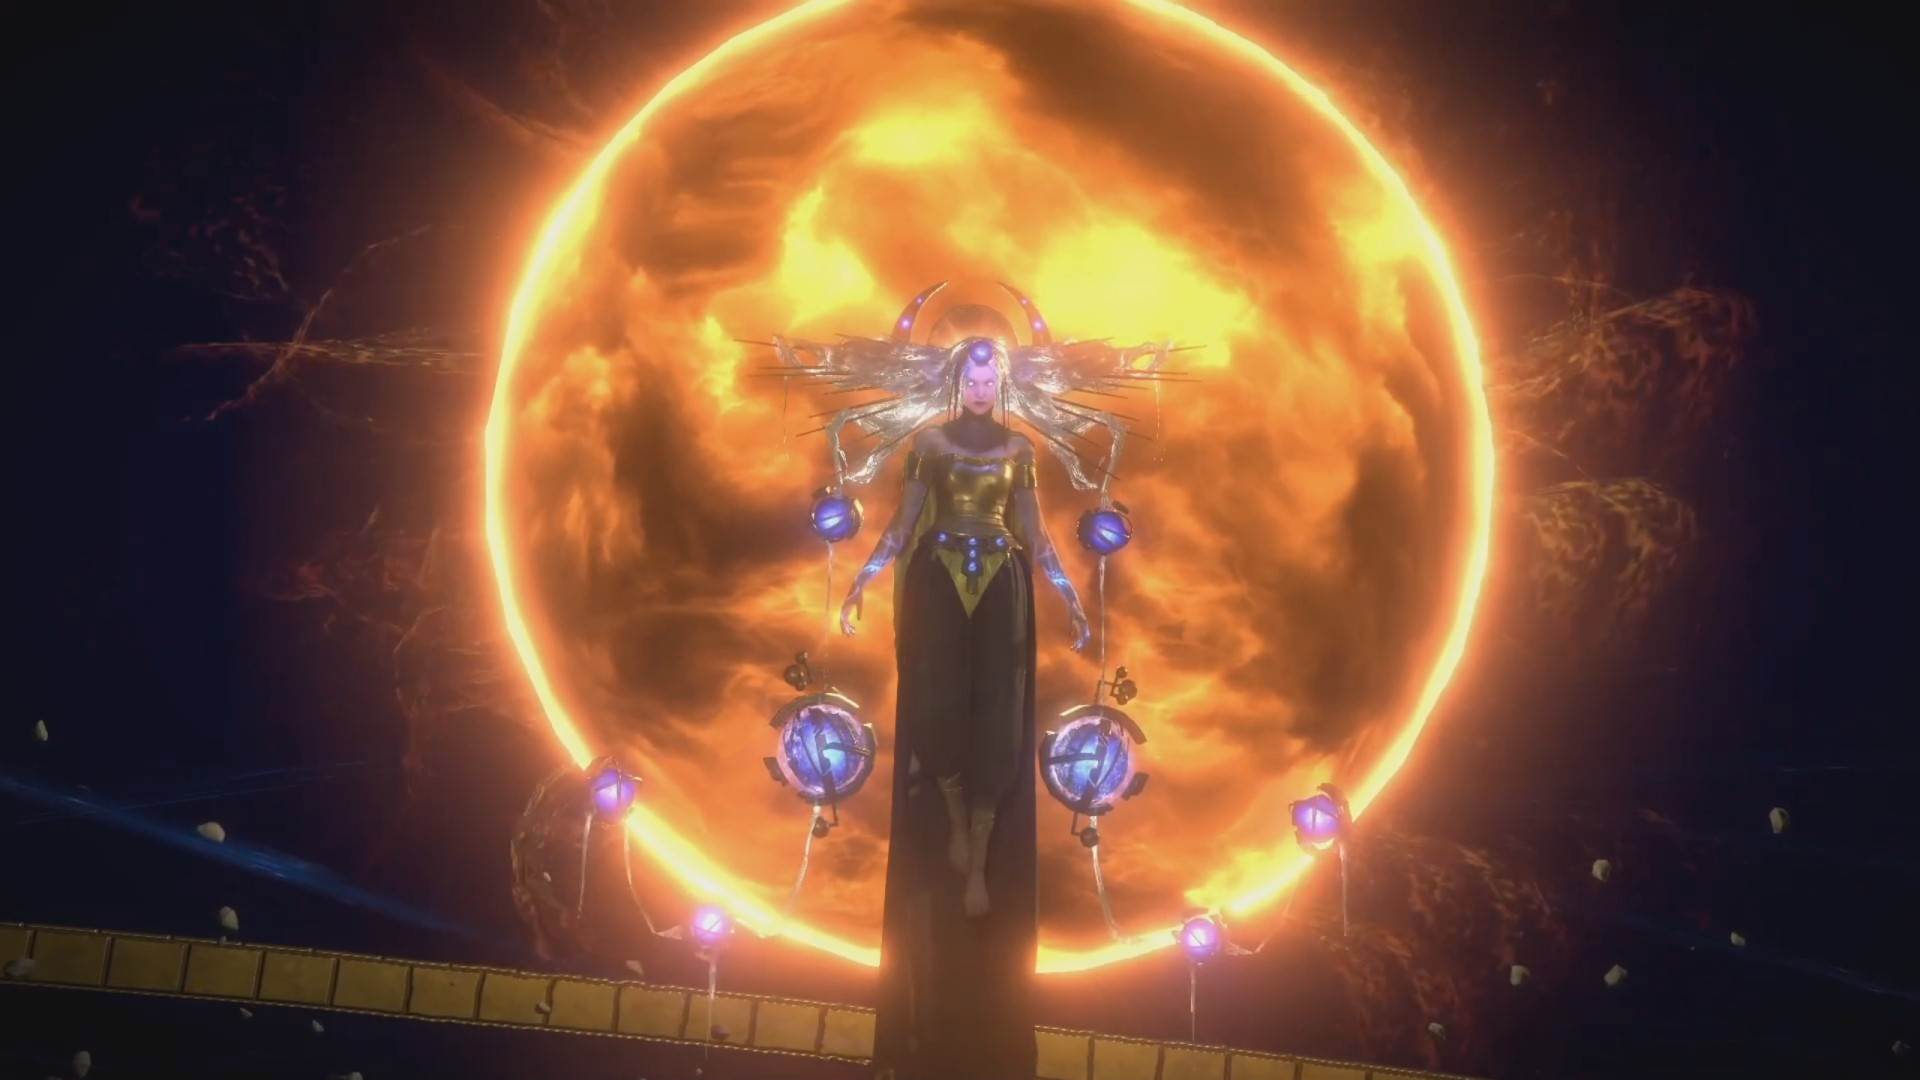 Path of Exile: Echoes of the Atlas is Grinding Gear's most successful expansion